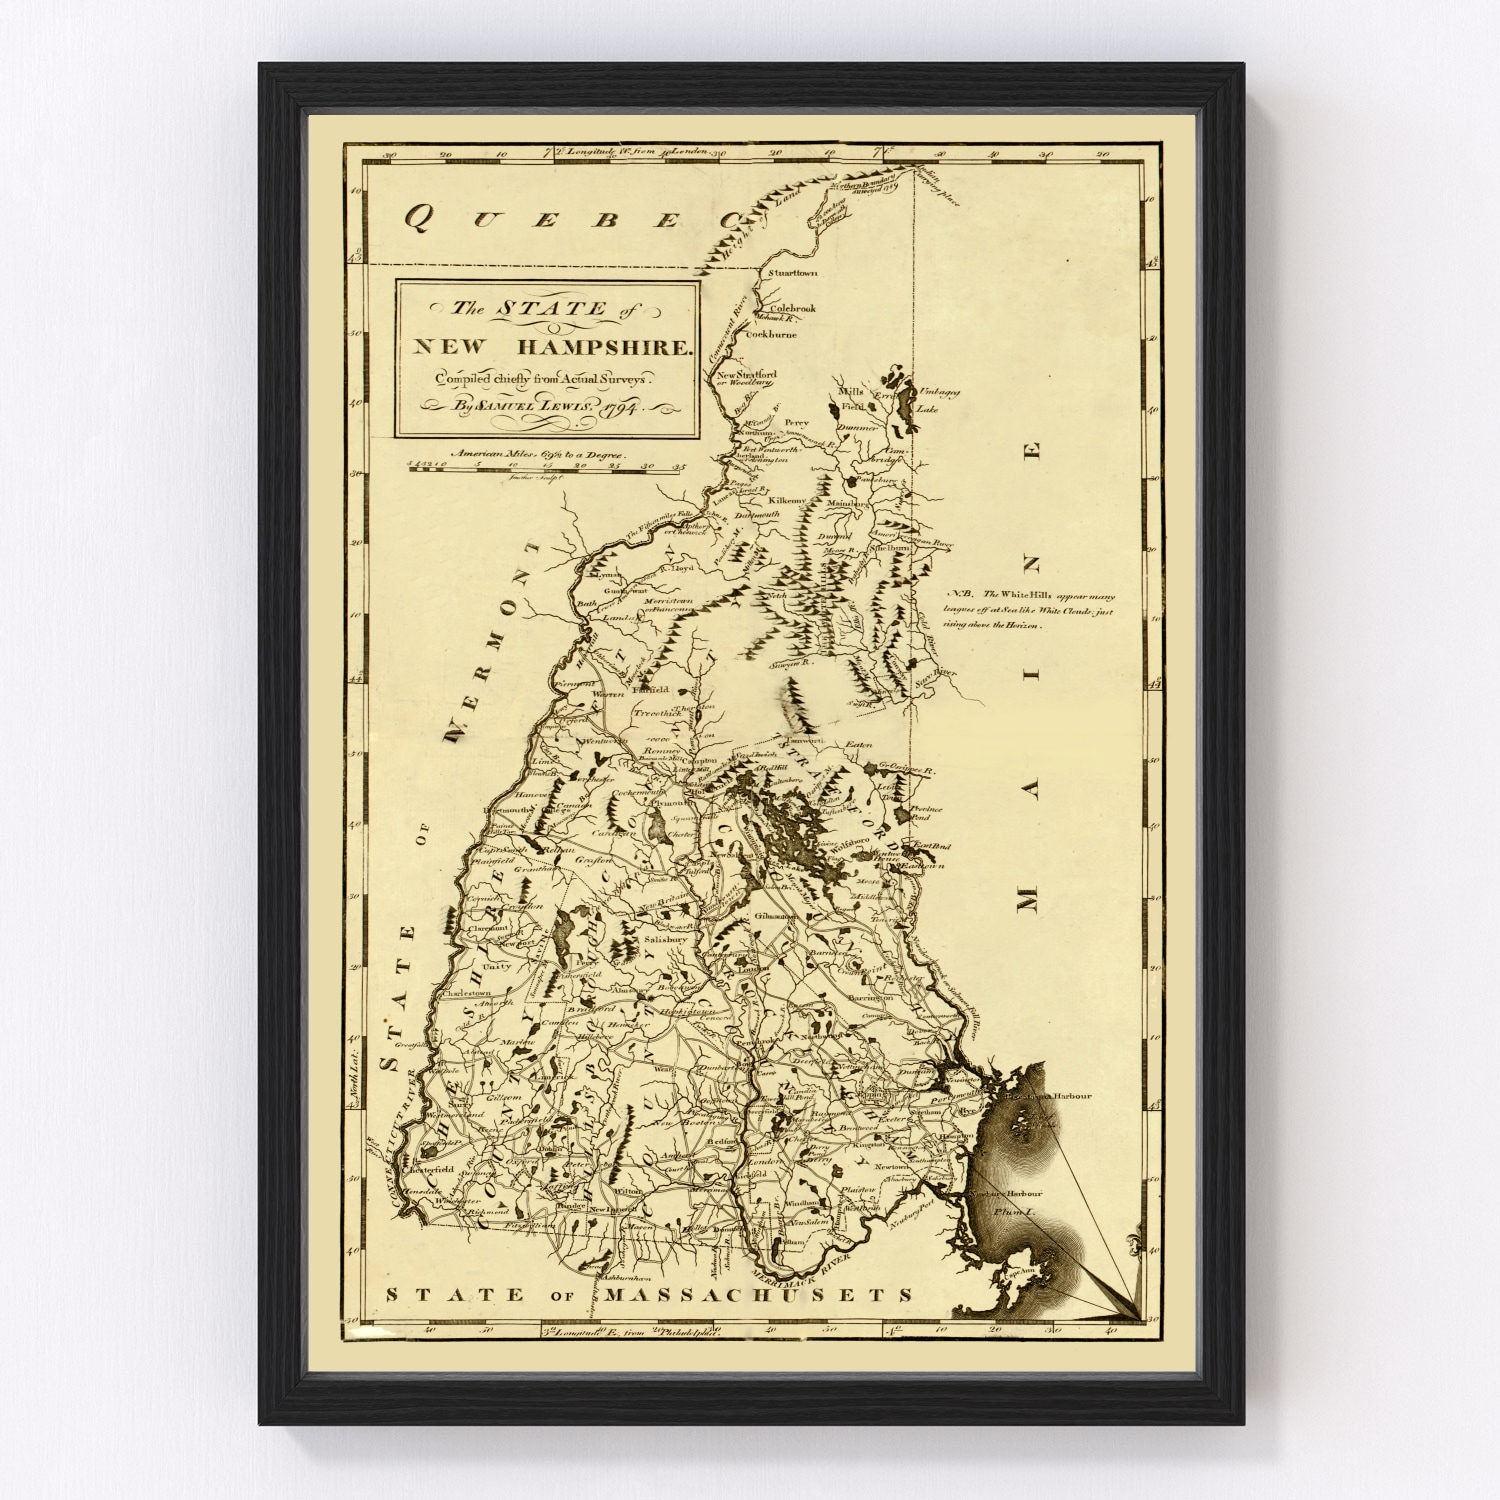 Vintage Map of New Hampshire, 1794